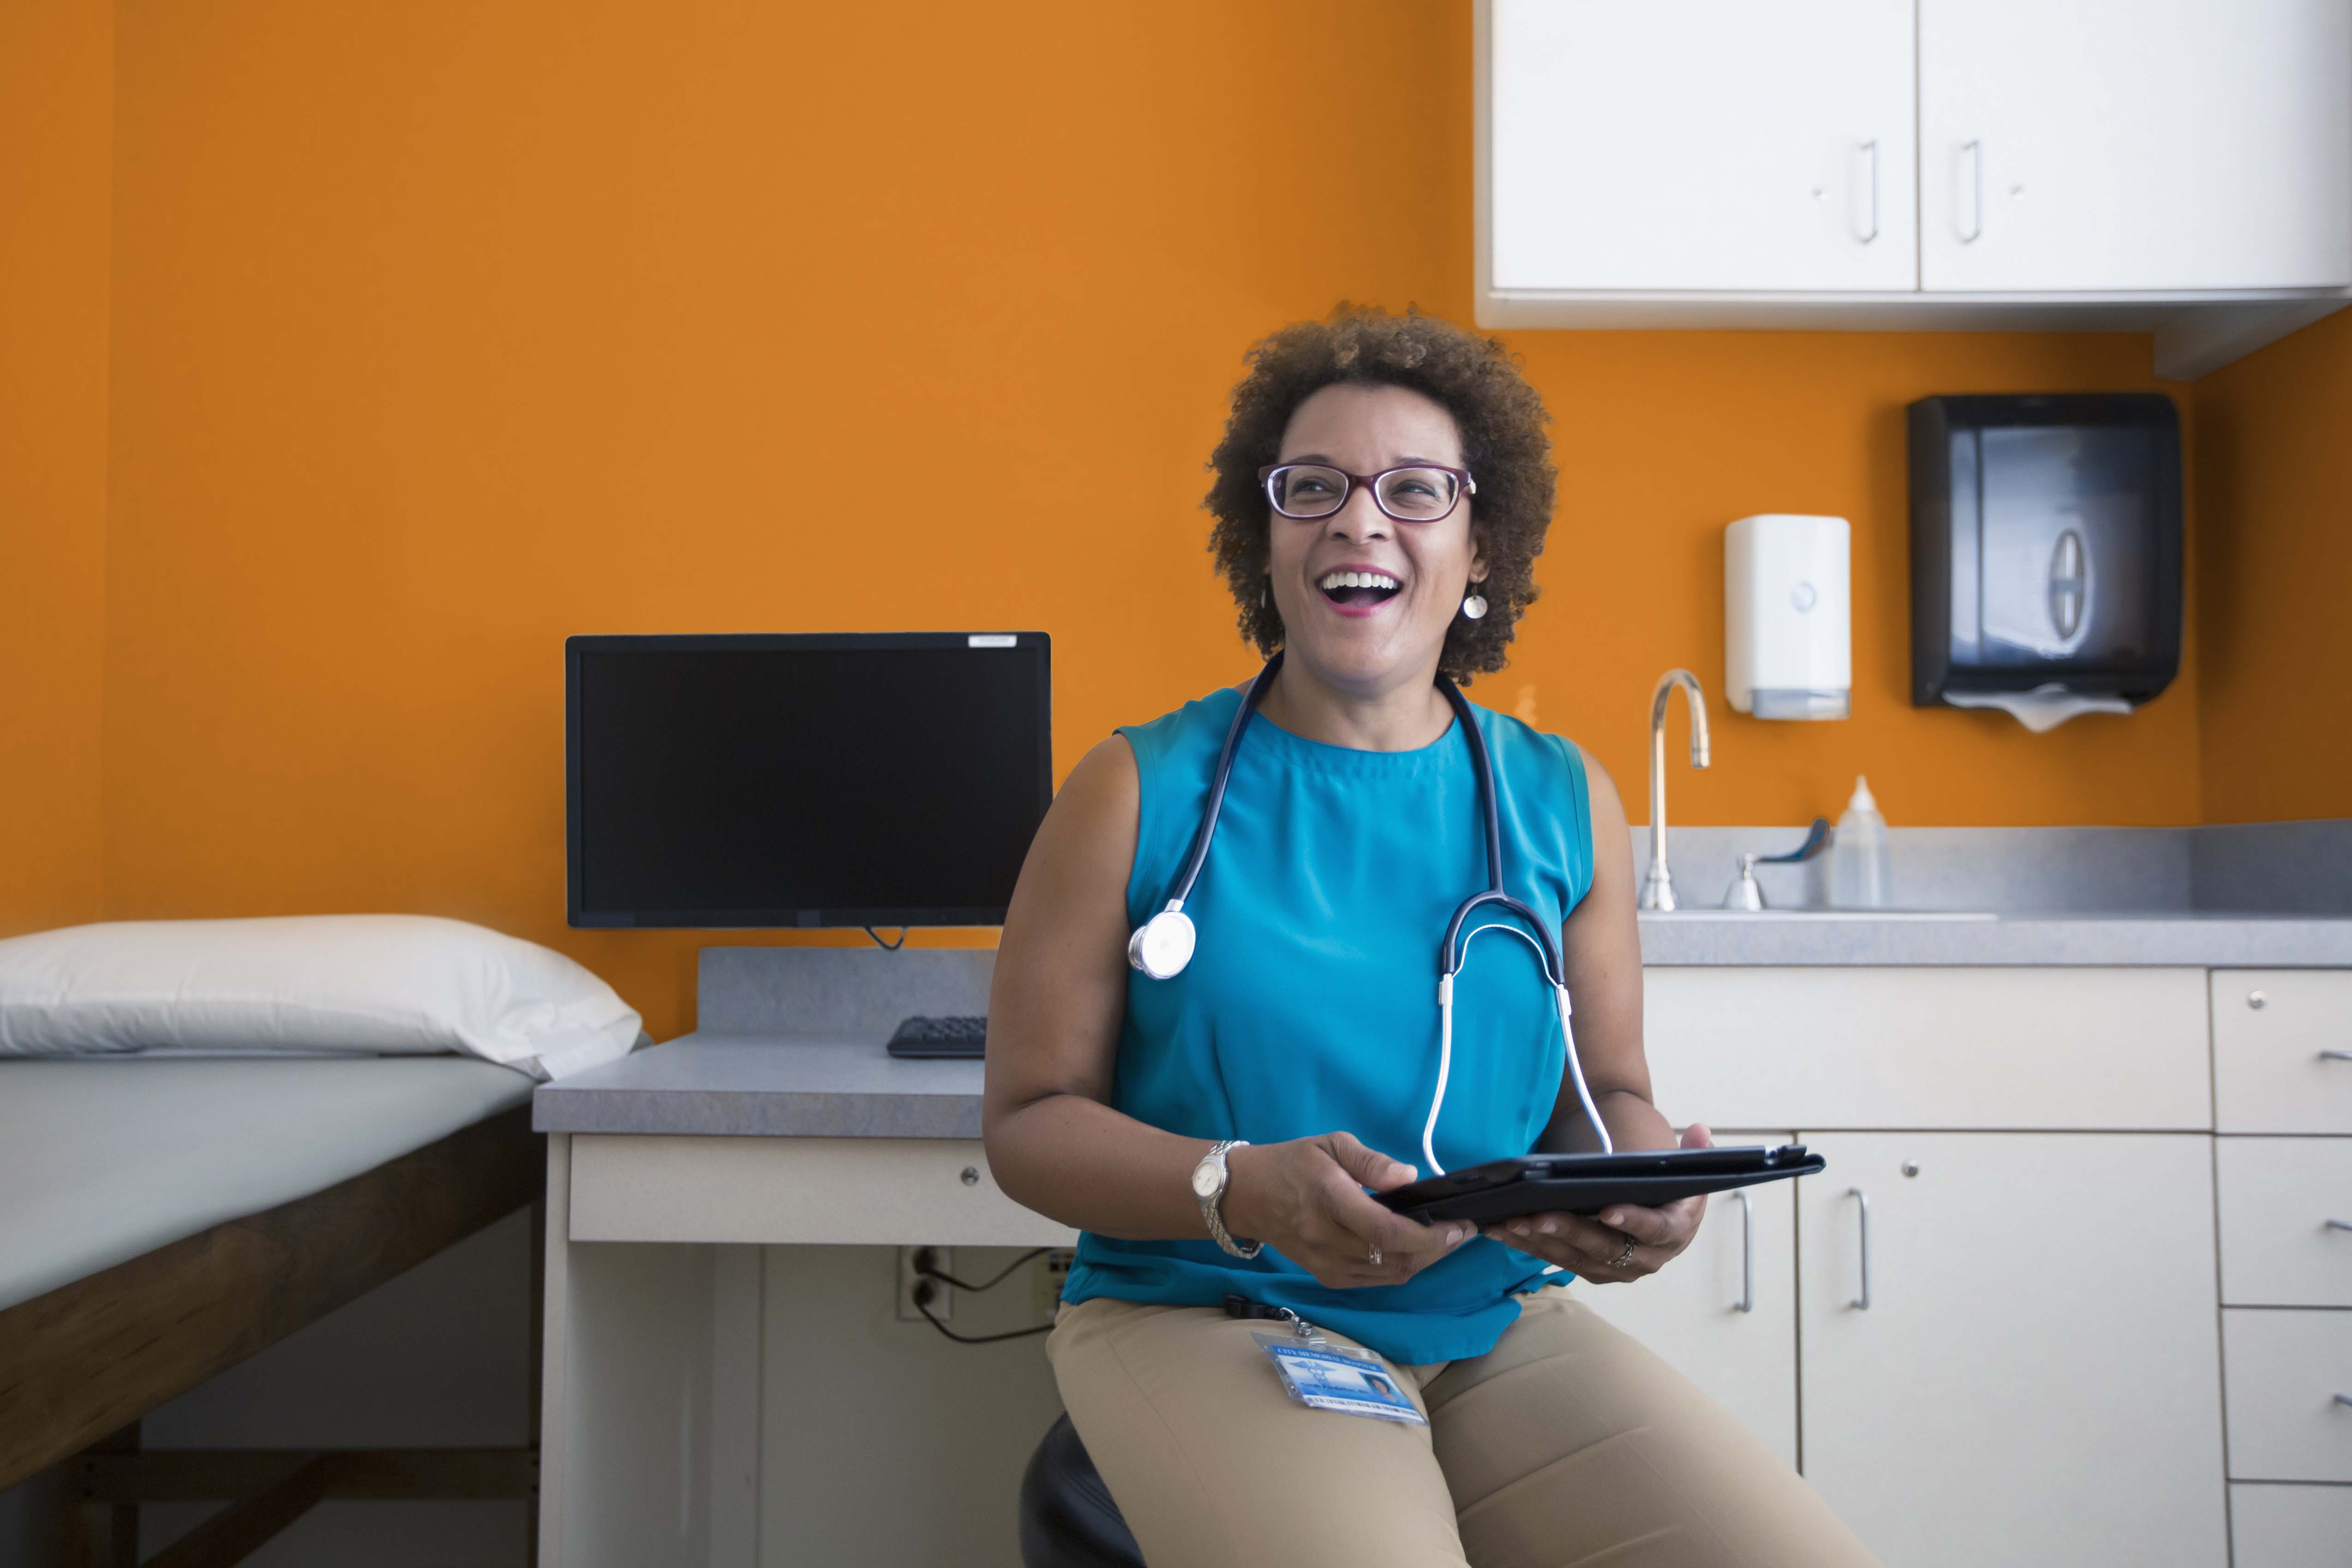 Female healthcare provider smiling and holding a tablet